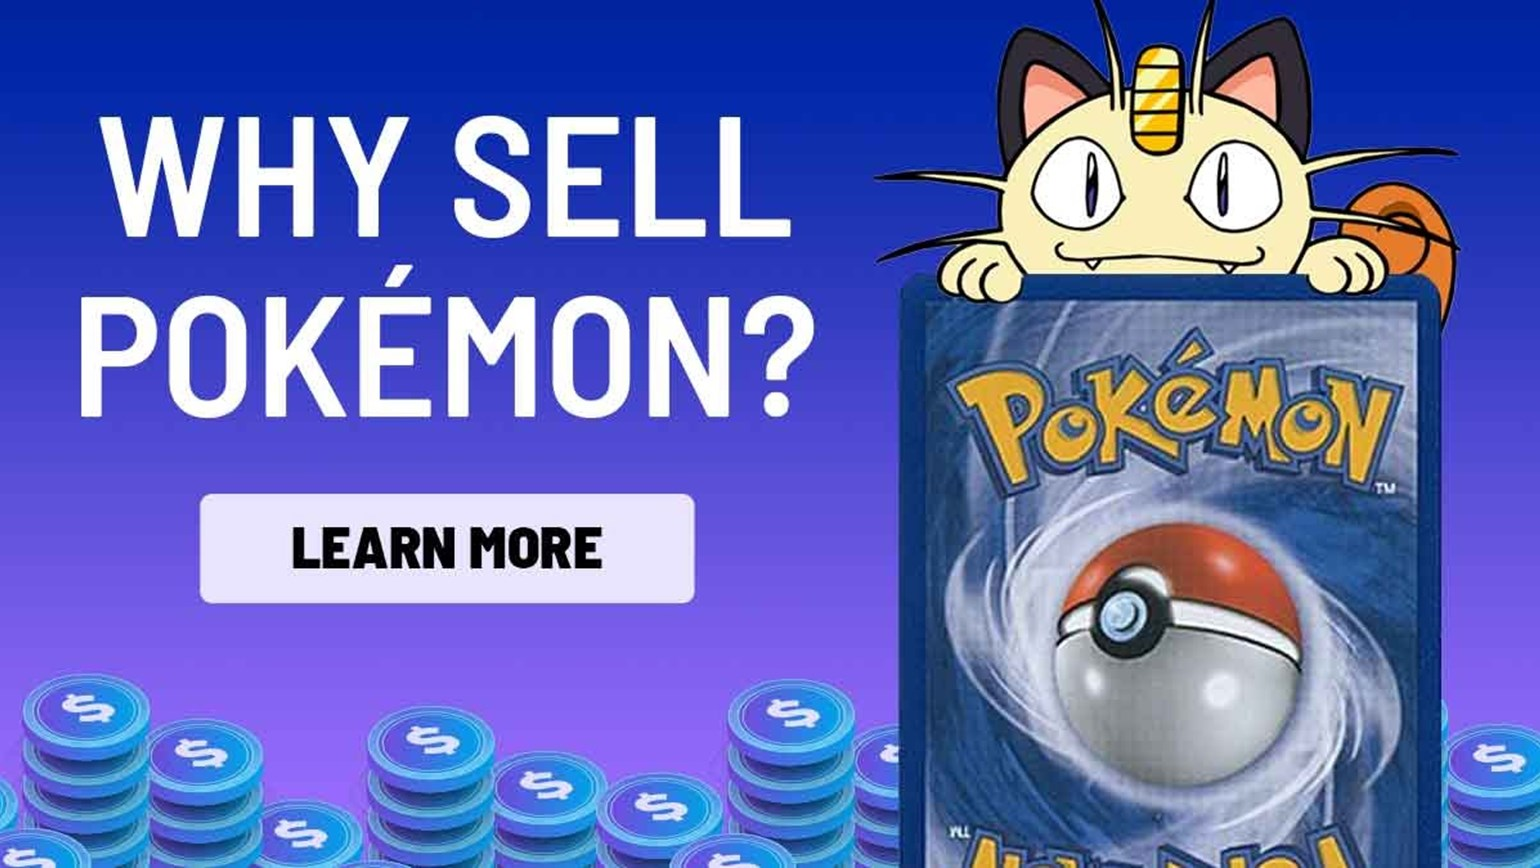 Should You Sell Pokémon Cards?